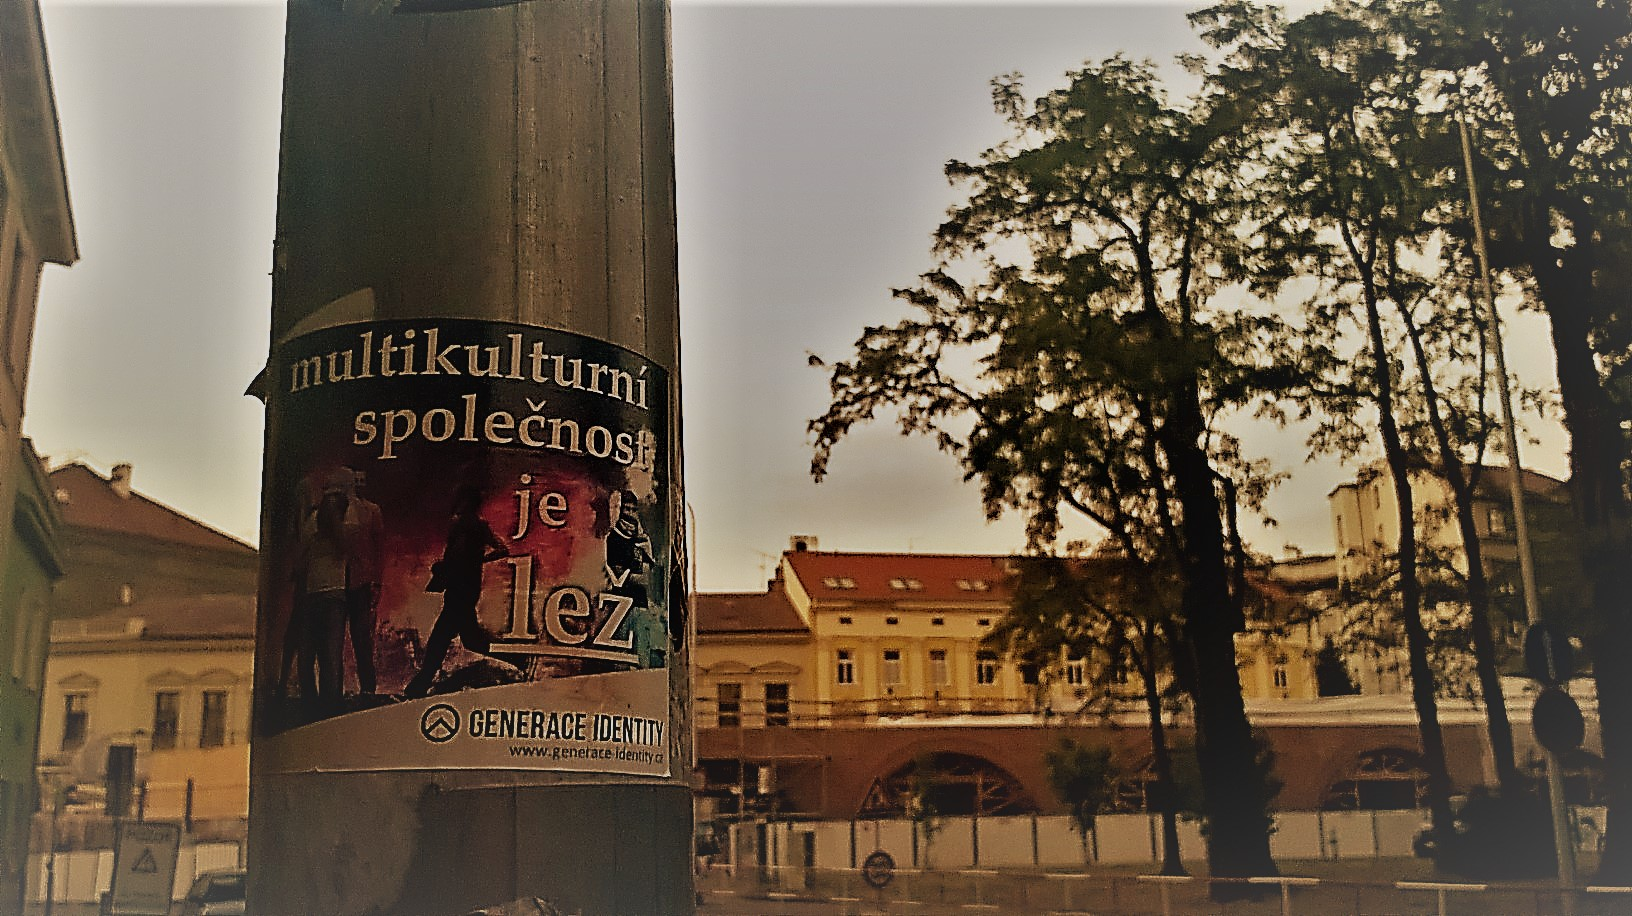 Multicultural society is a fact. Prague. (The sign says multicultural society is a lie.)